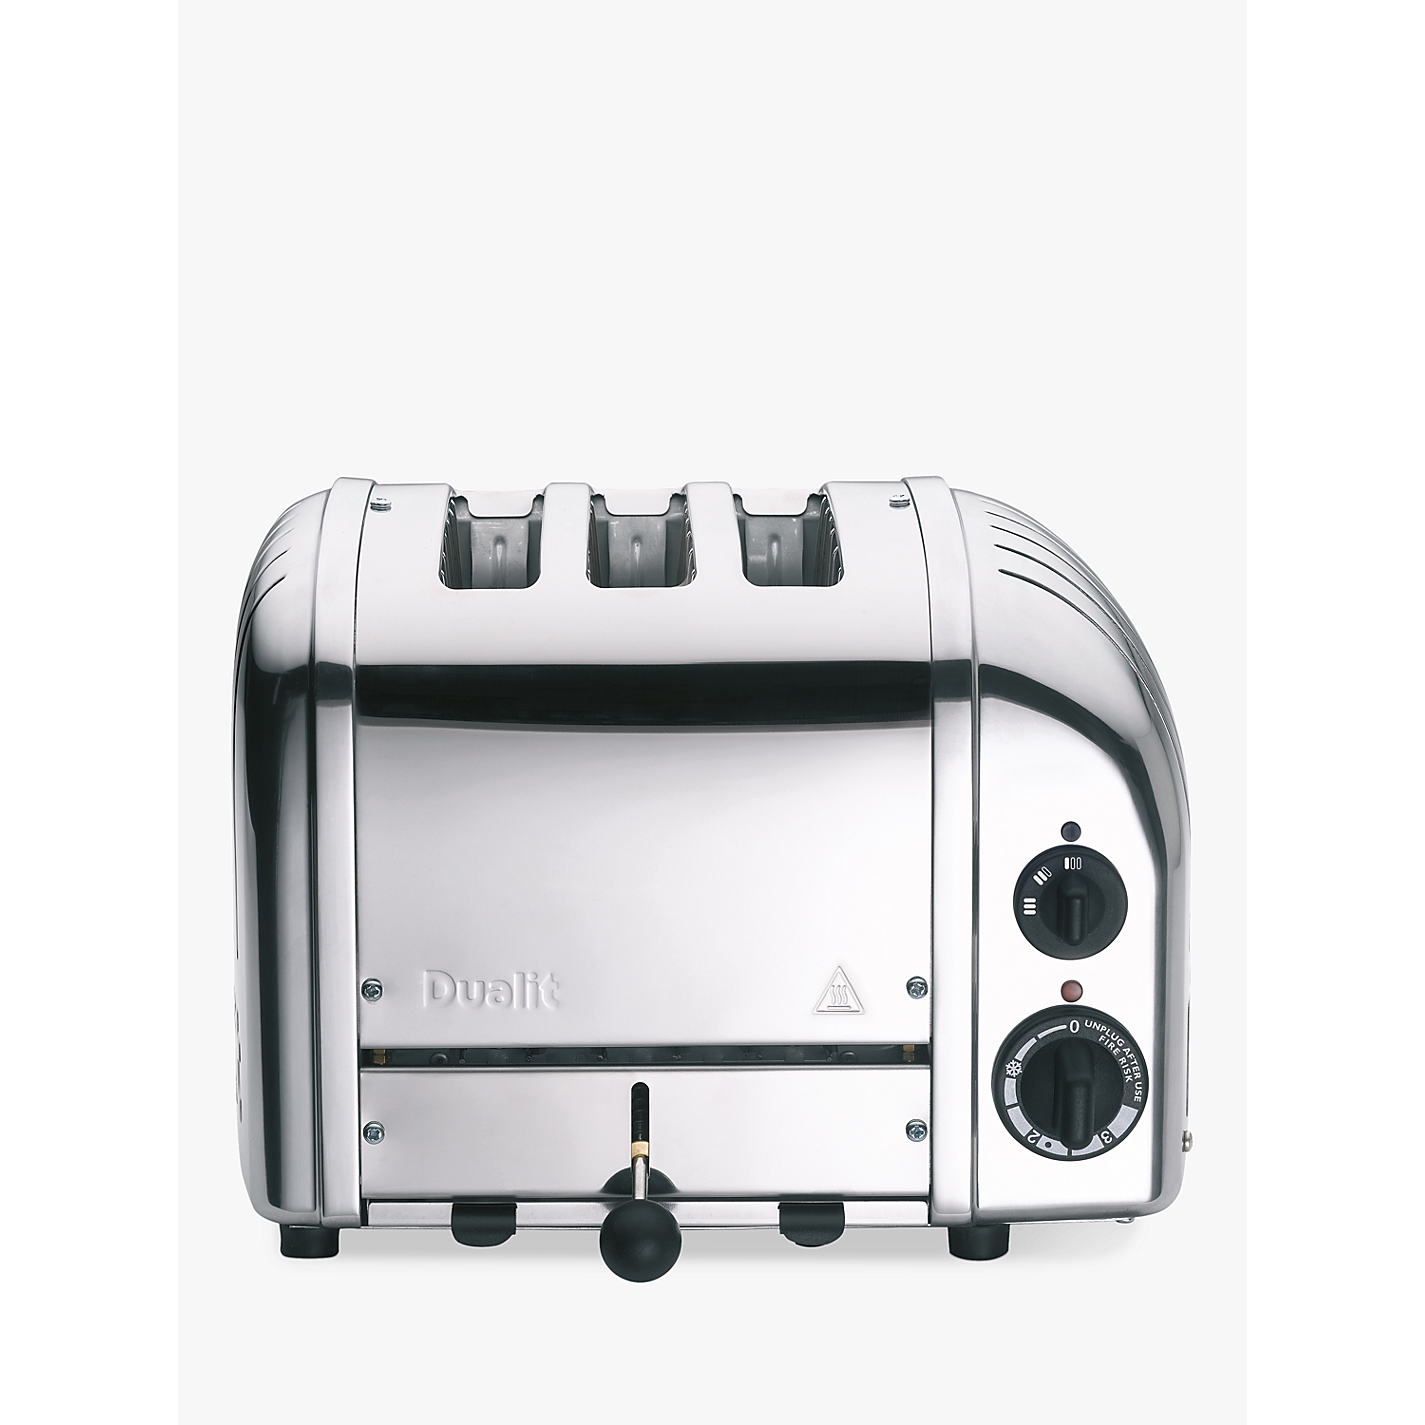 Buy Dualit 3 Slot Vario Toaster Stainless Steel